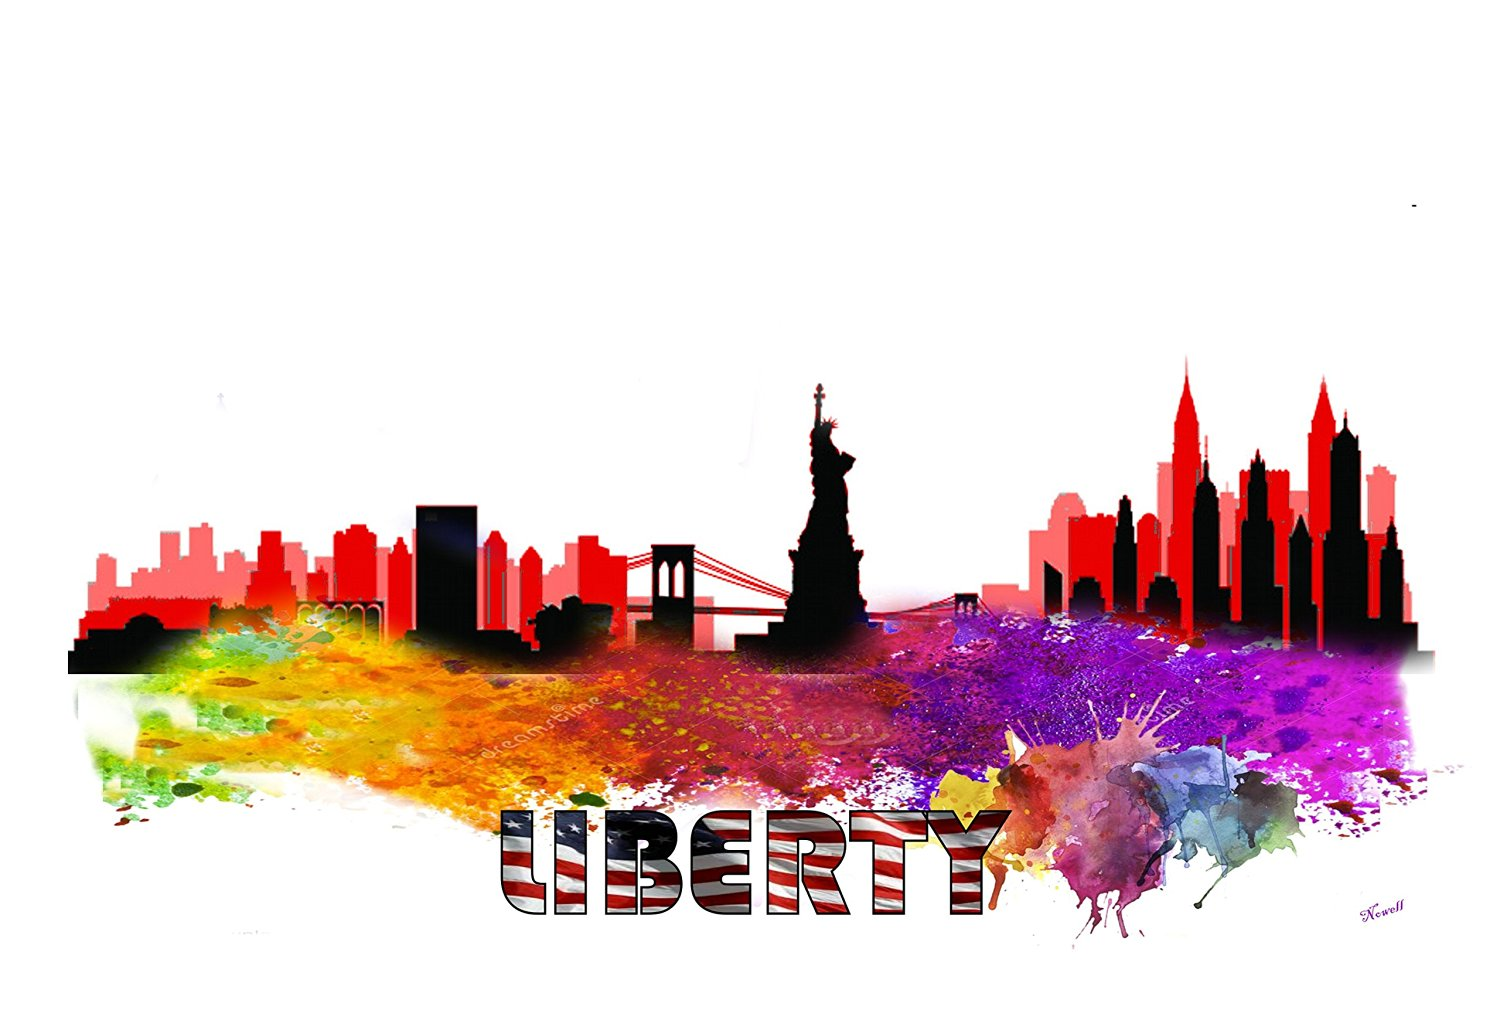 Statue Of Liberty New YOrk City Skyline City Silhouette Watercolor Art Print S/N Limited Edition (8 x 10) (8 x 10) (20 x 30) (11 x 14) (20 x 30)